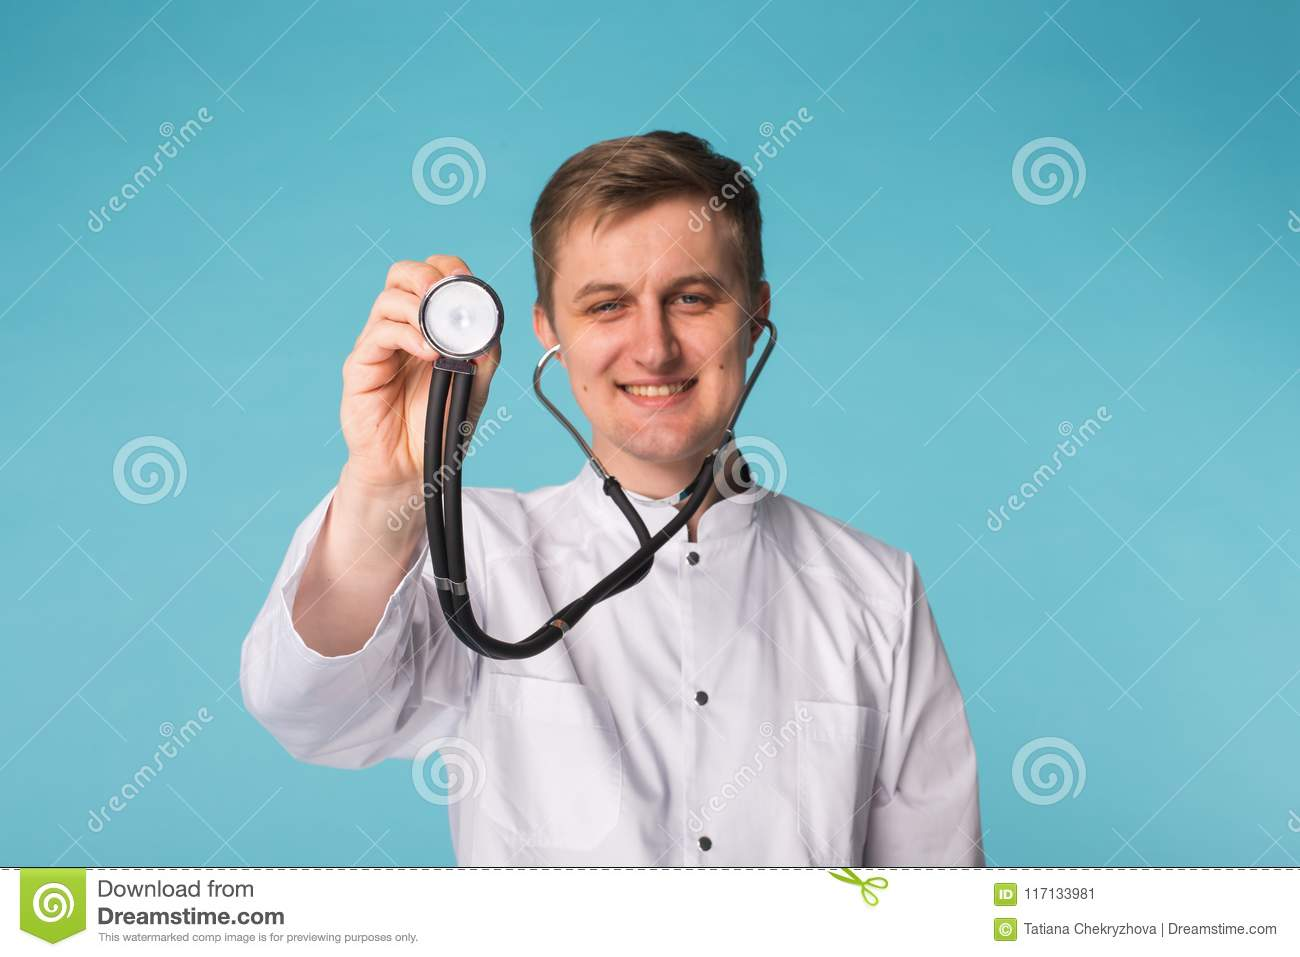 Smiling medical doctor man with stethoscope over blue background with copy space